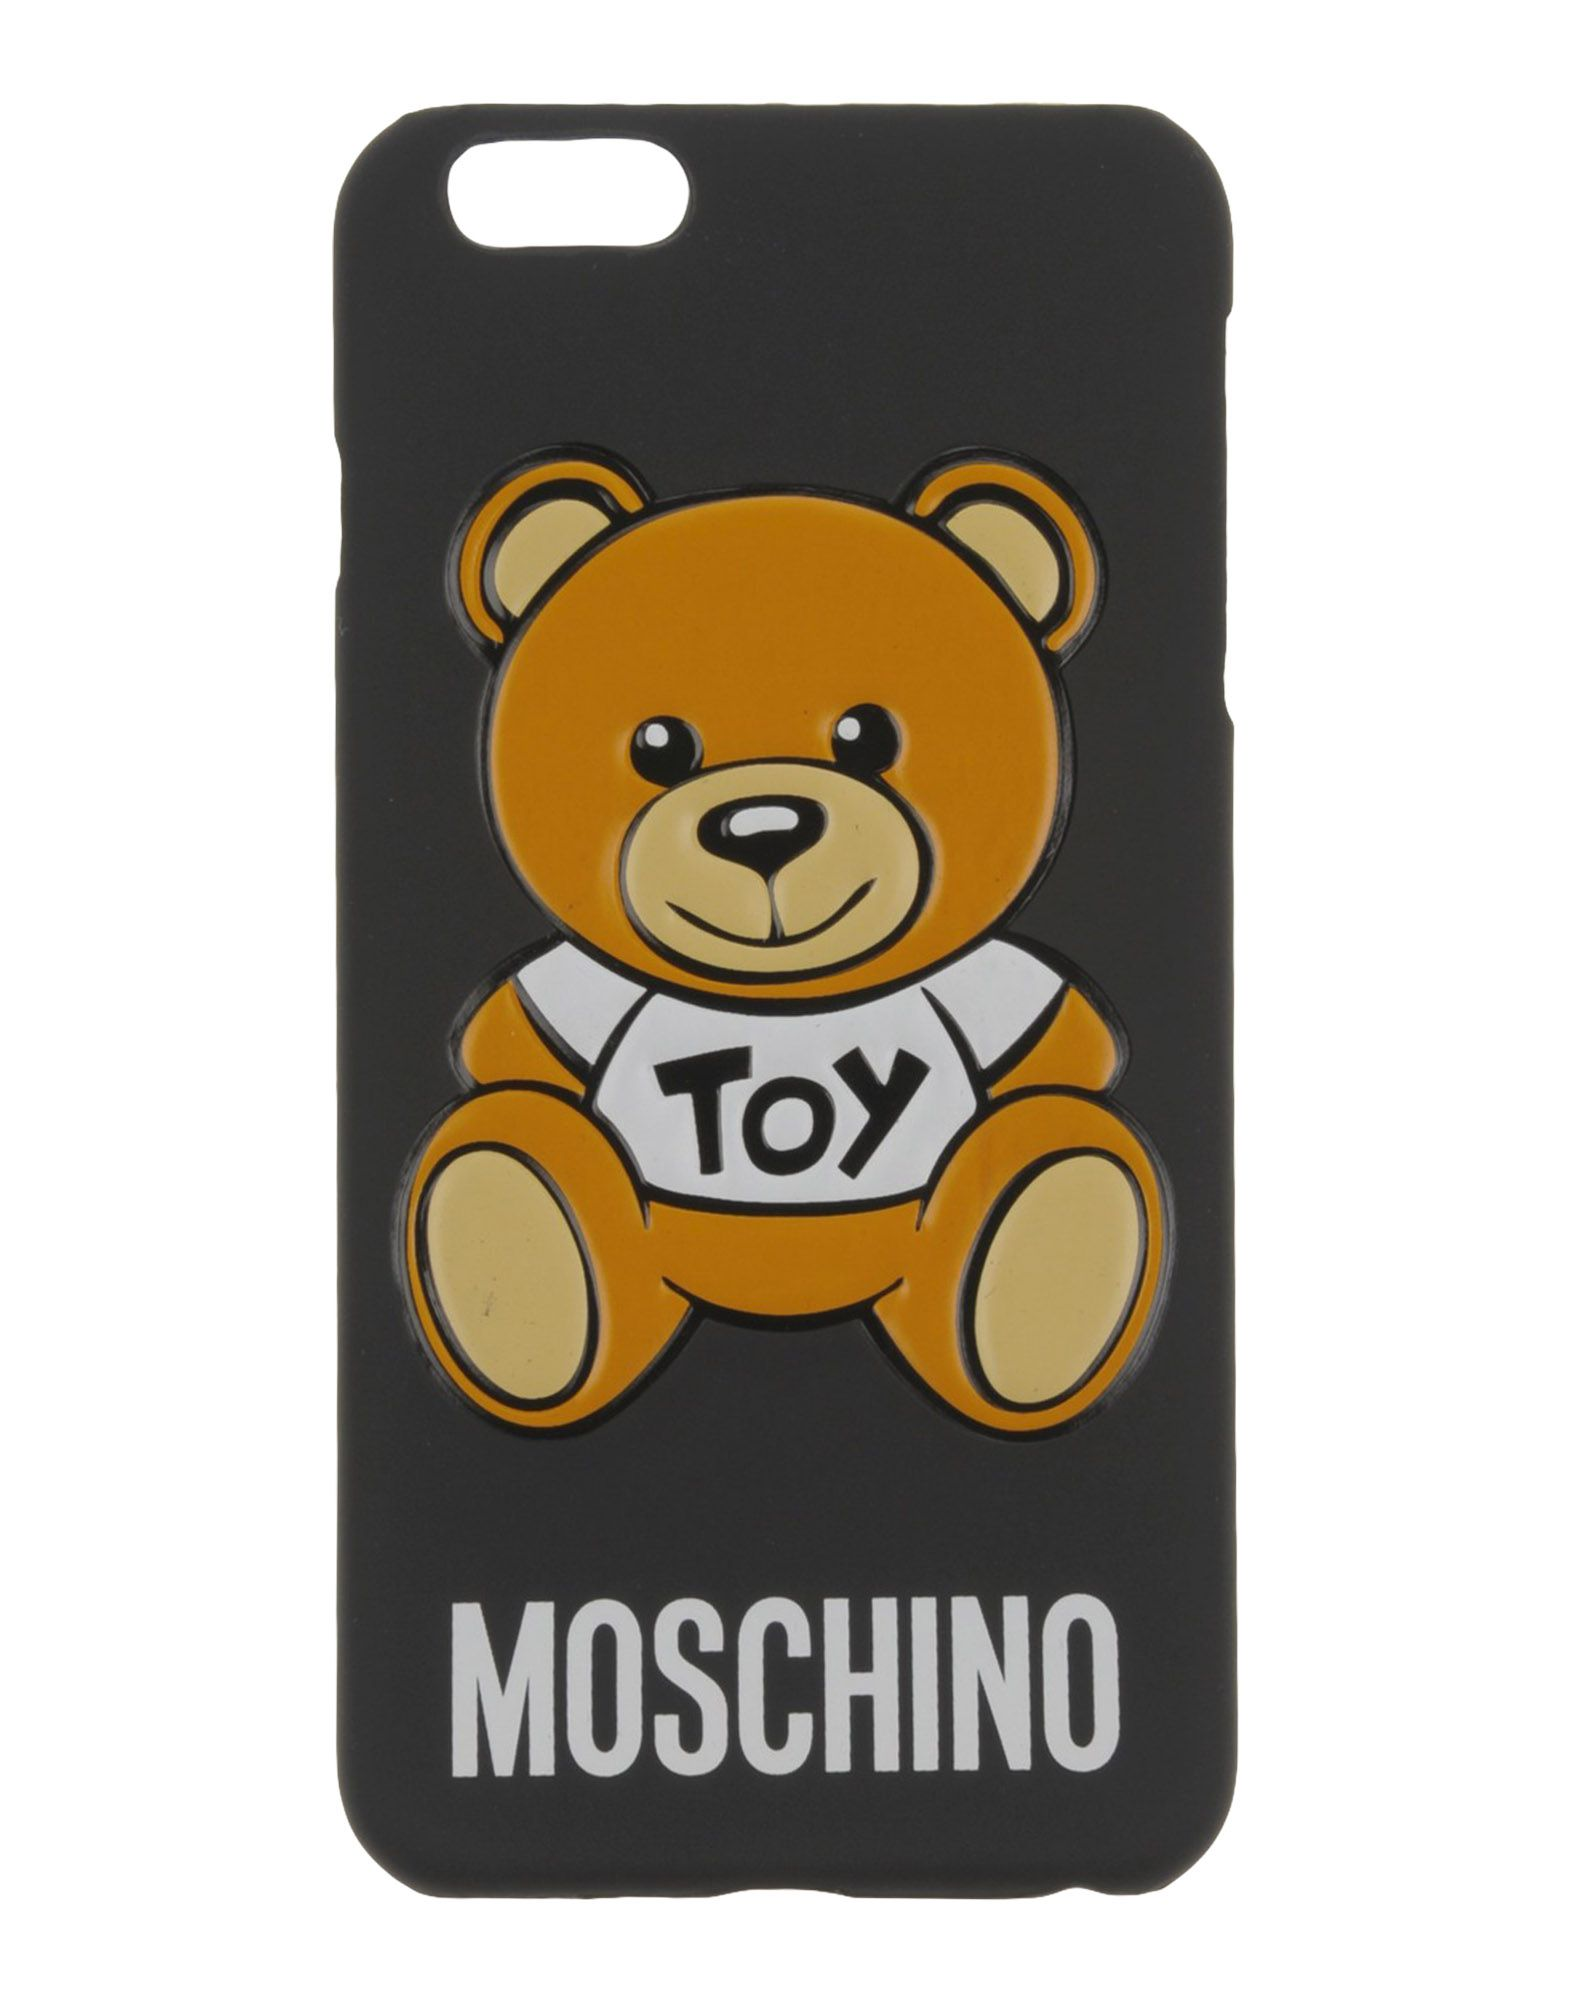 cover iphone 6 moschino